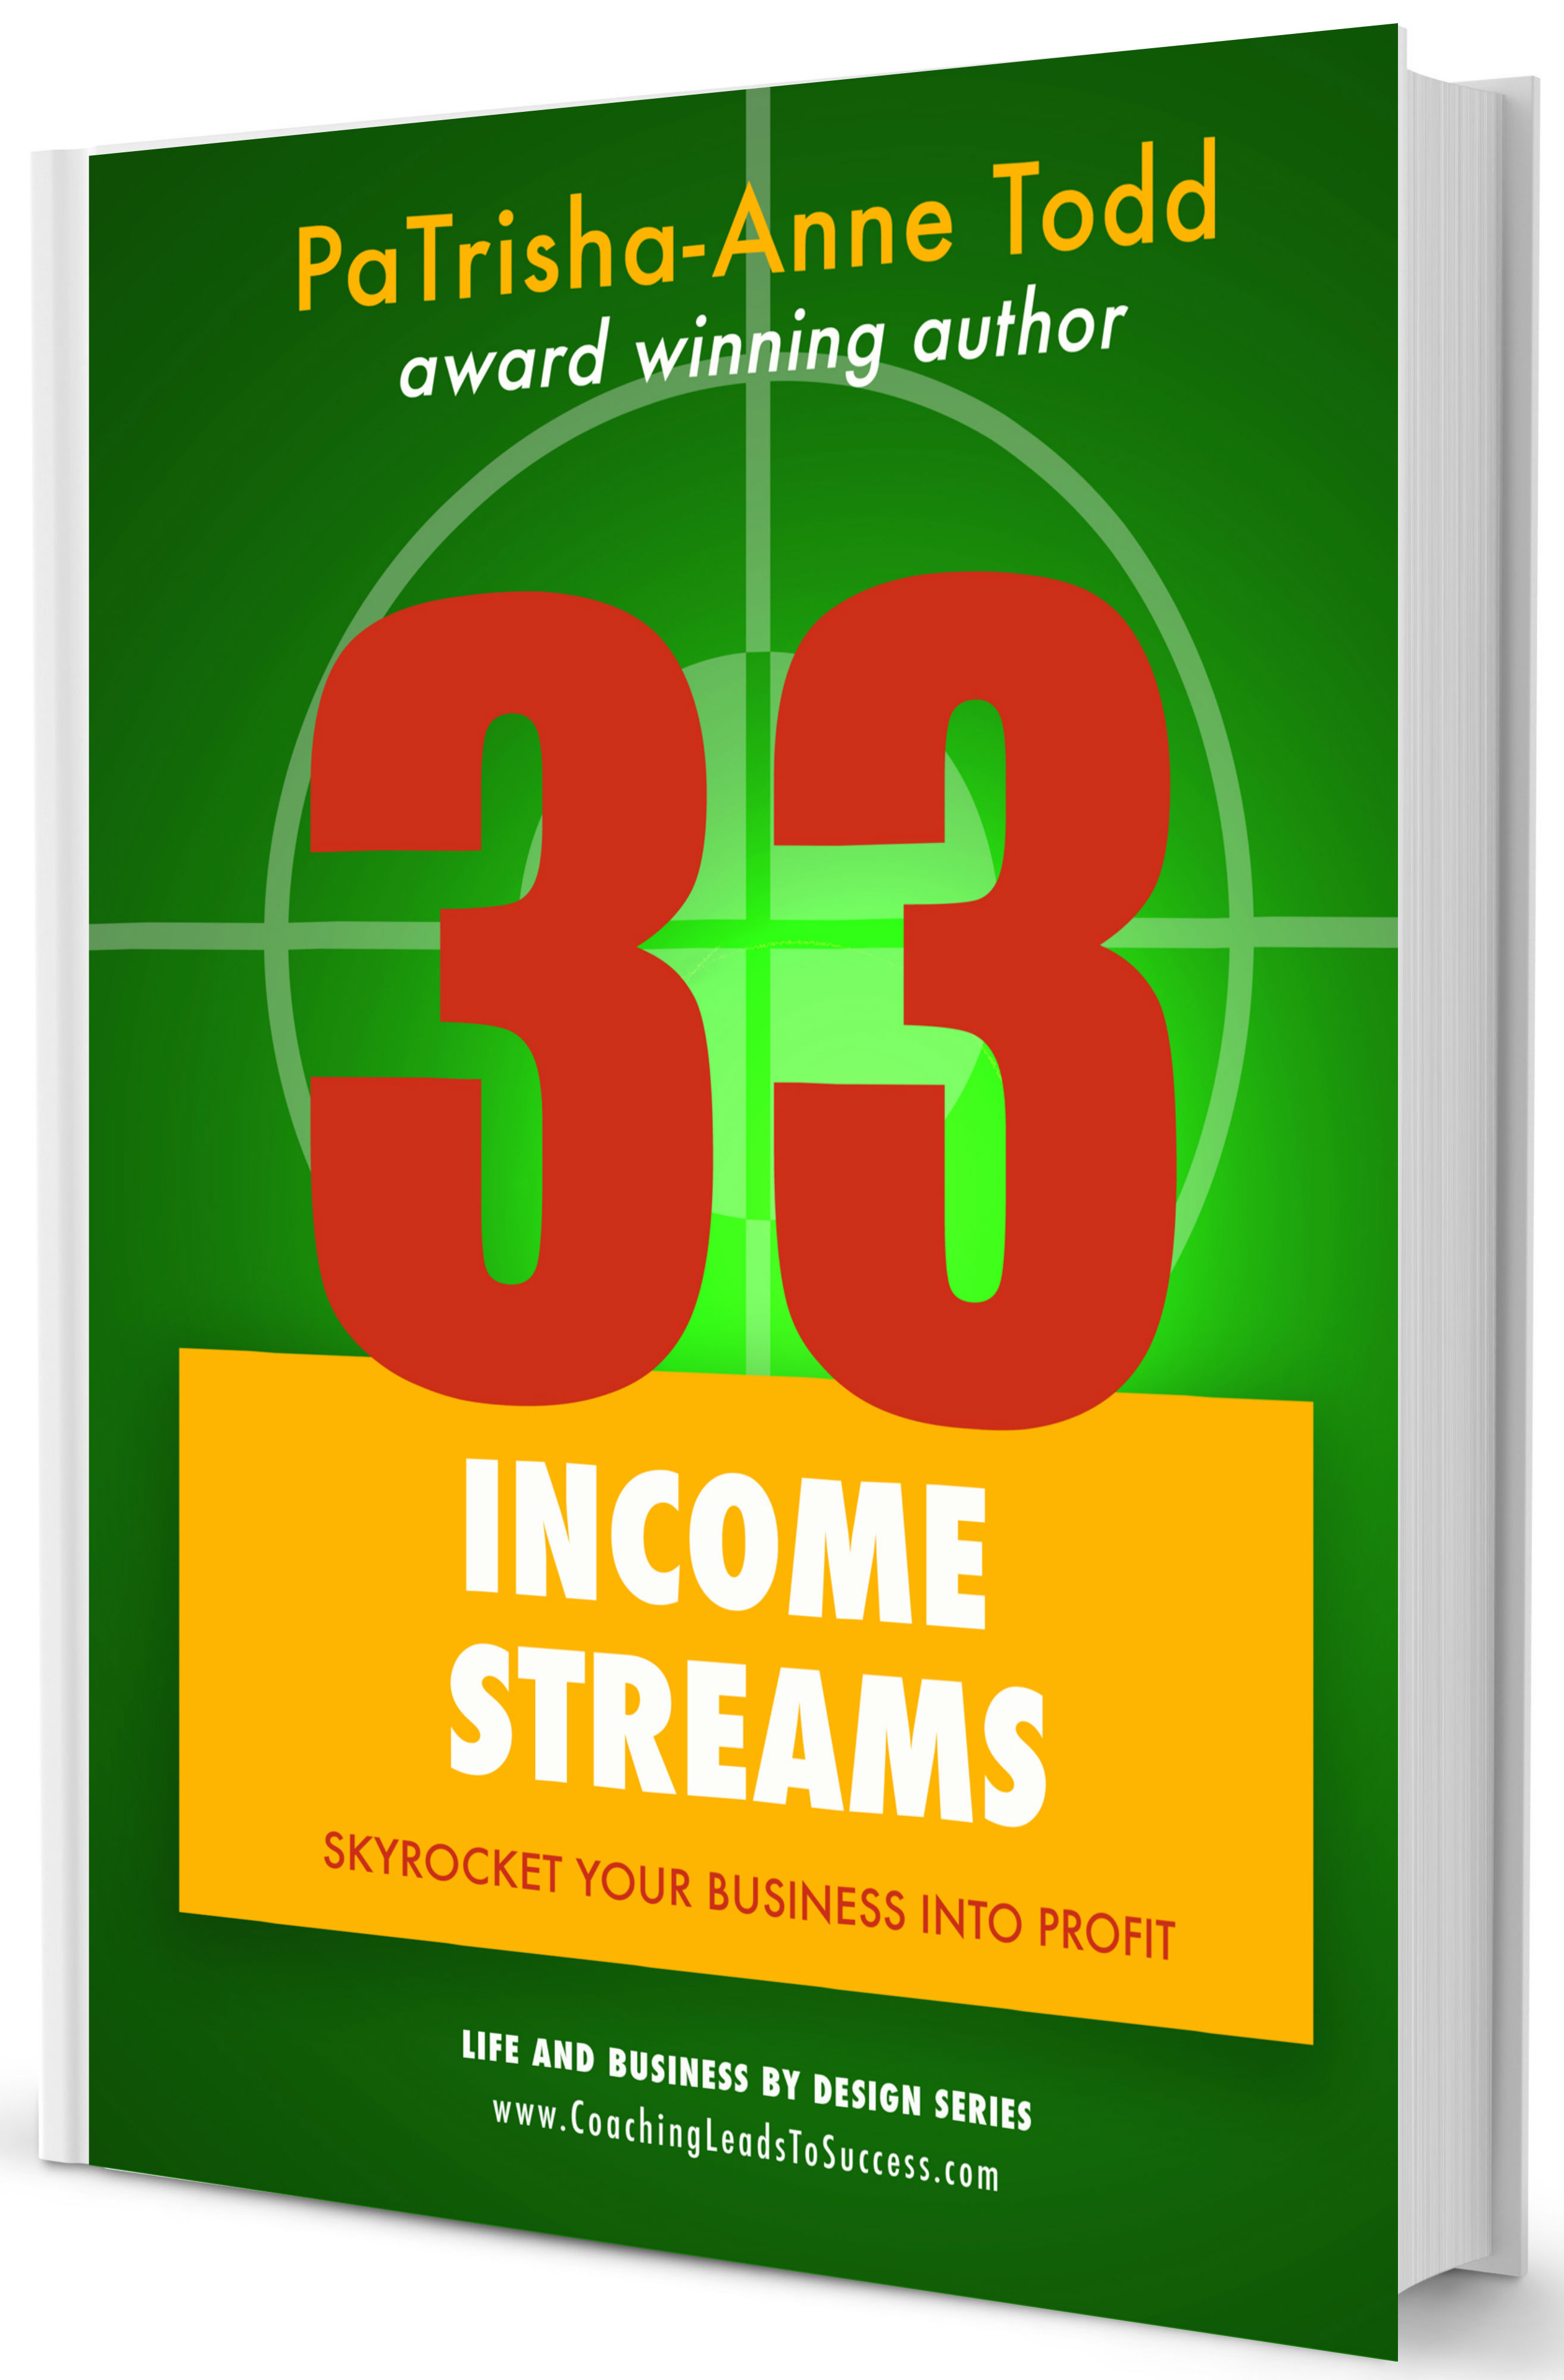 33 Income Streams by PaTrihsa-Anne Todd at www.CoachingLeadsToSuccess.com